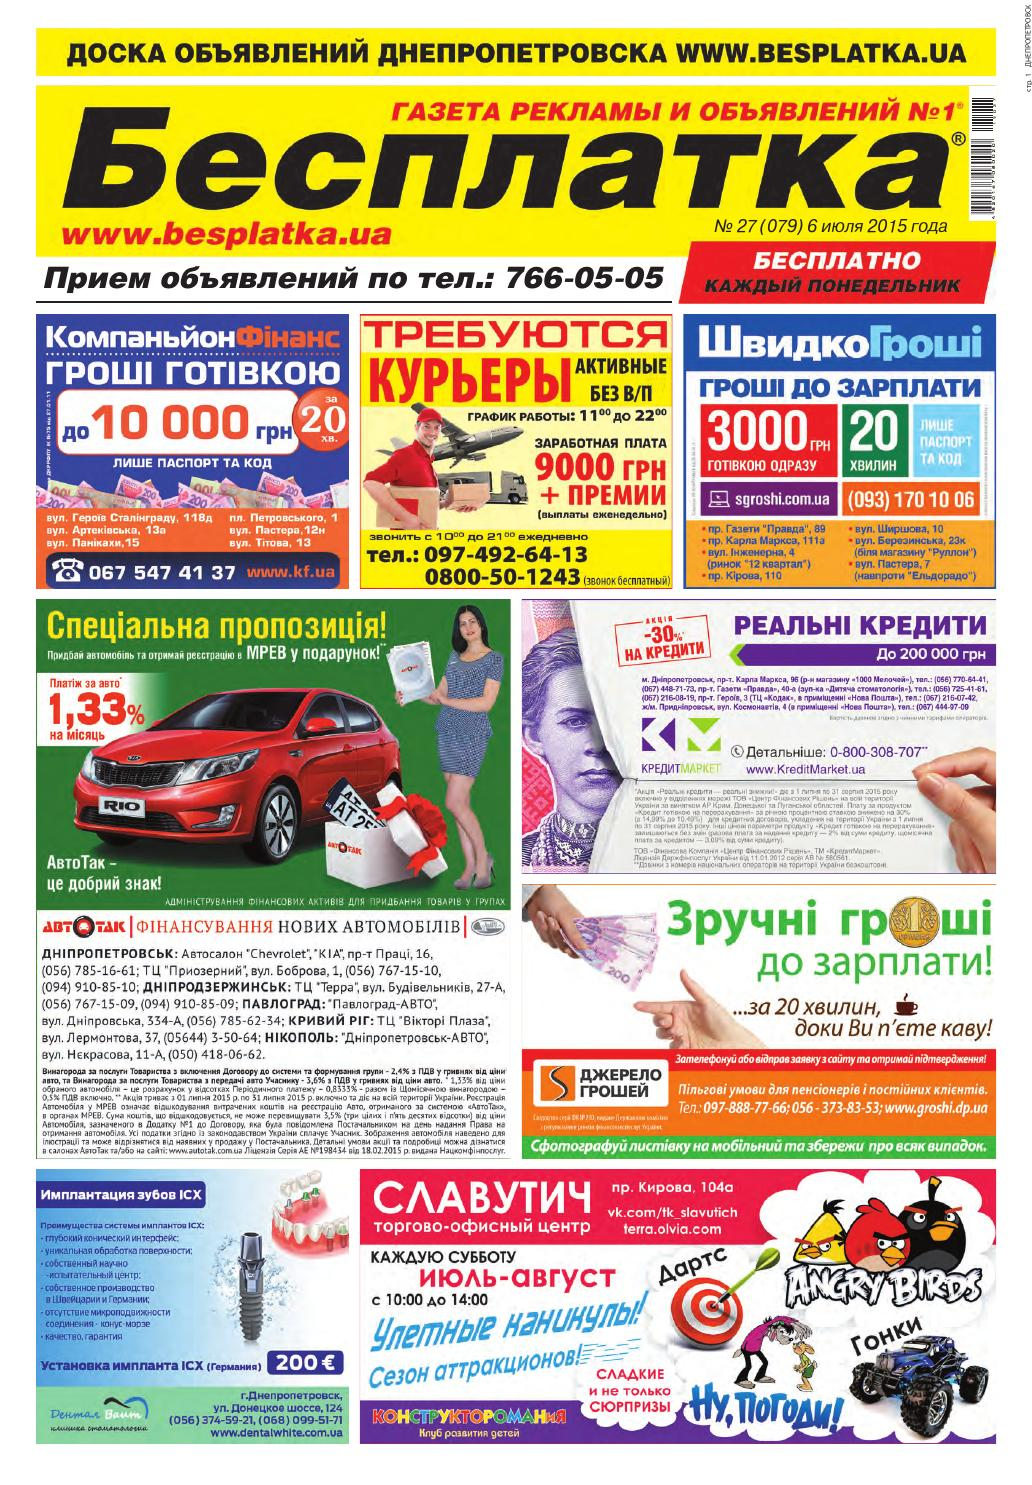 Besplatka  27 Днепропетровск by besplatka ukraine - issuu e9ccf7a18bf